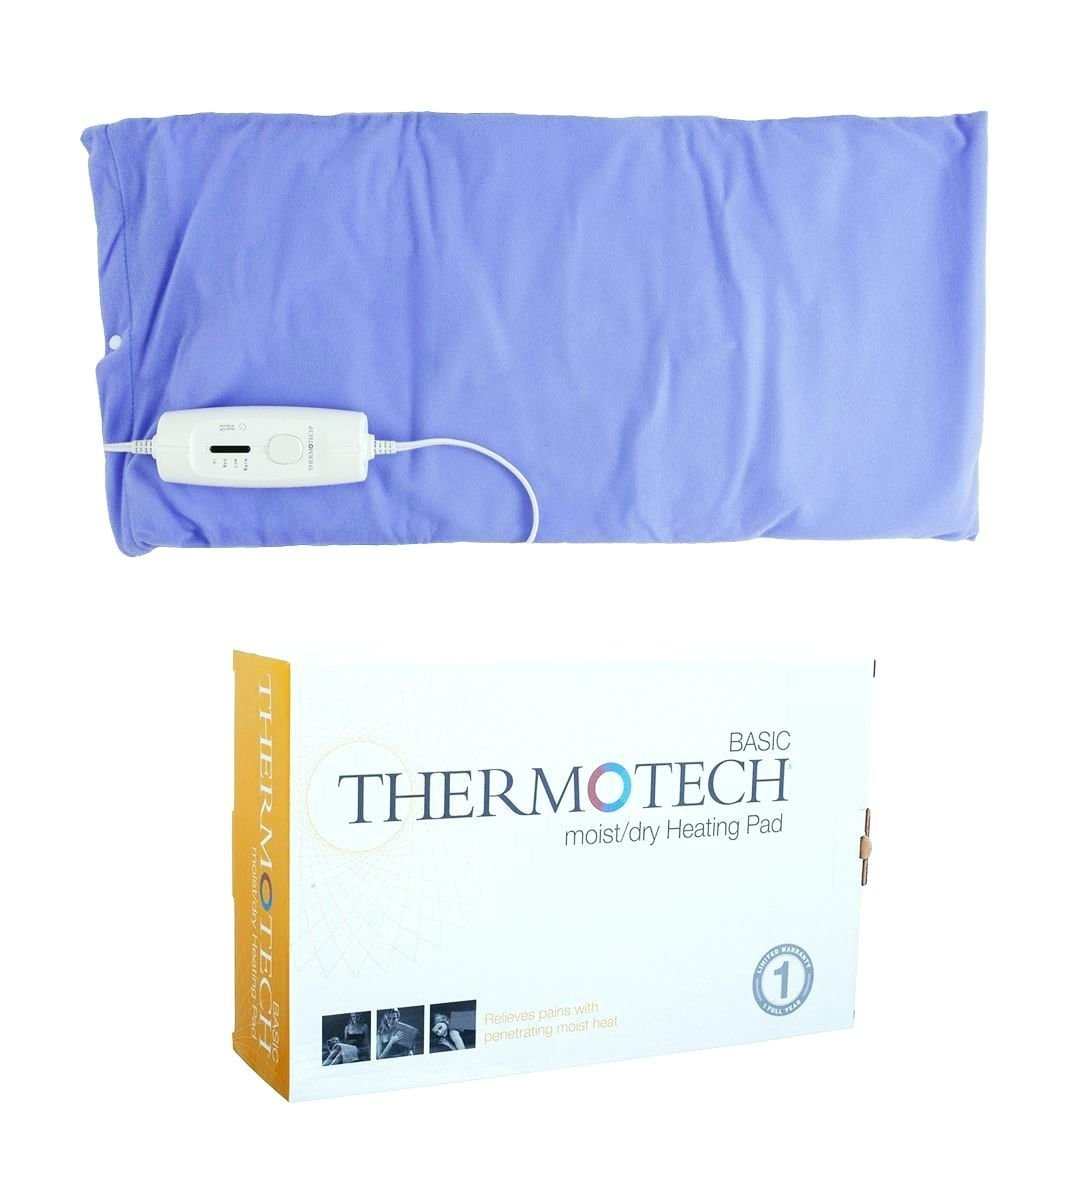 Electric Heating Pads for Back Pain and Cramps by Thermotech - Extra-Large Moist Heat Blanket - Basic Economy Pad